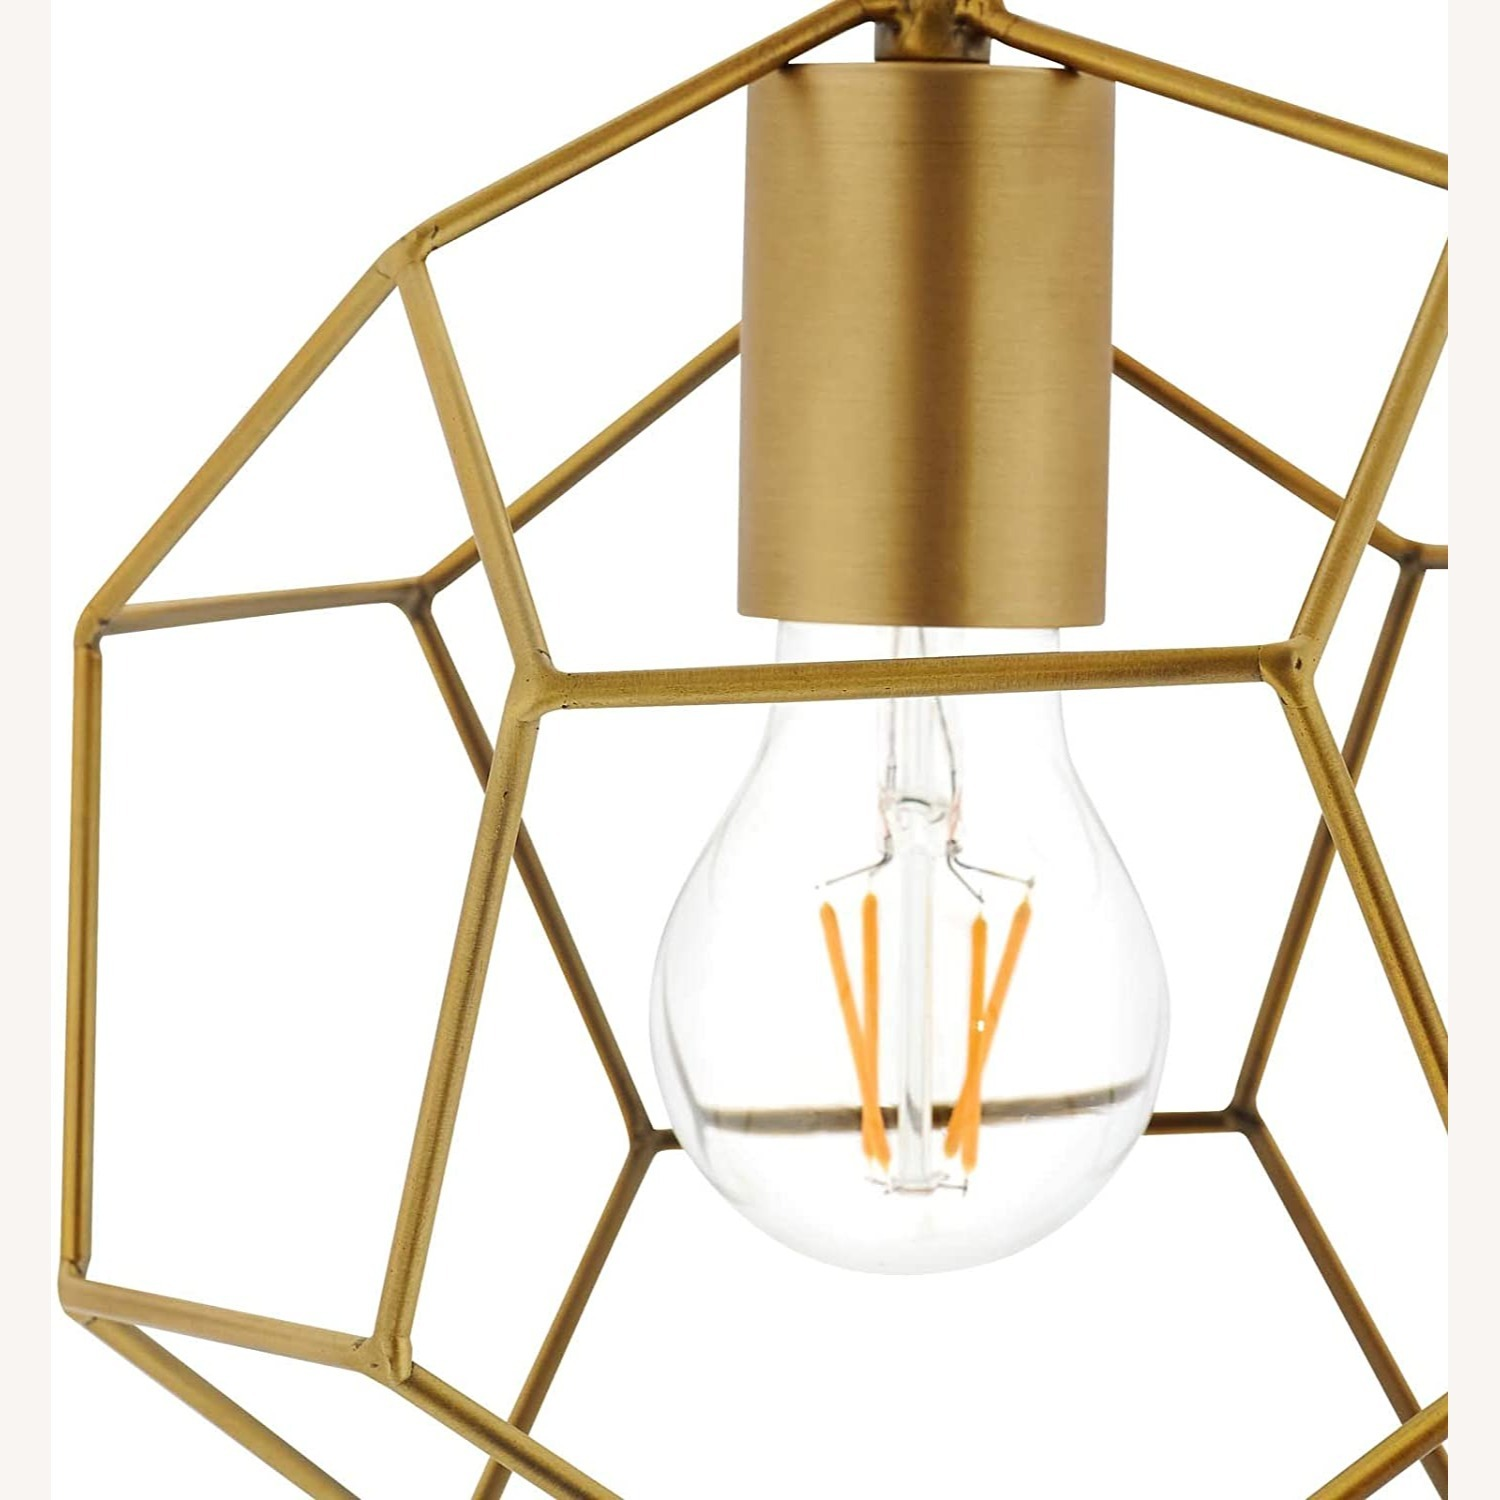 Contemporary Ceiling Lamp In Gold Metal Finish - image-2